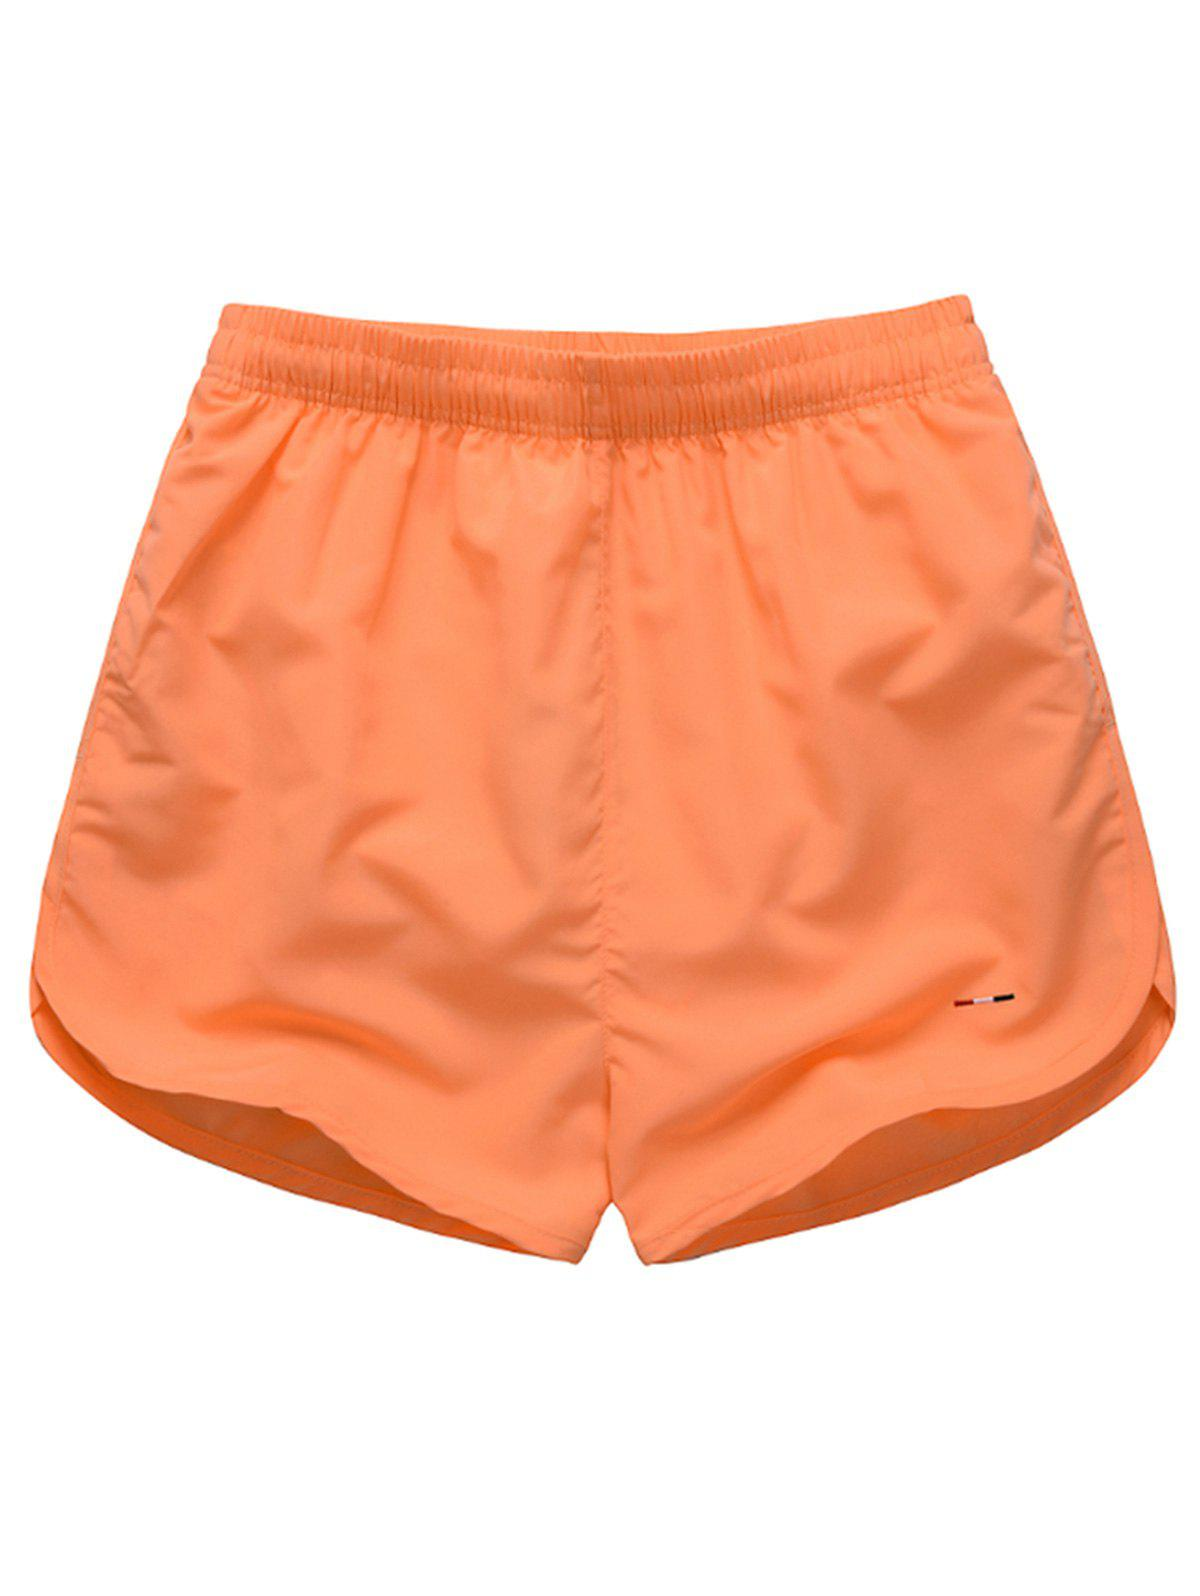 Mesh Lined Dolphin Hem Beach Shorts - ORANGE RED 2XL